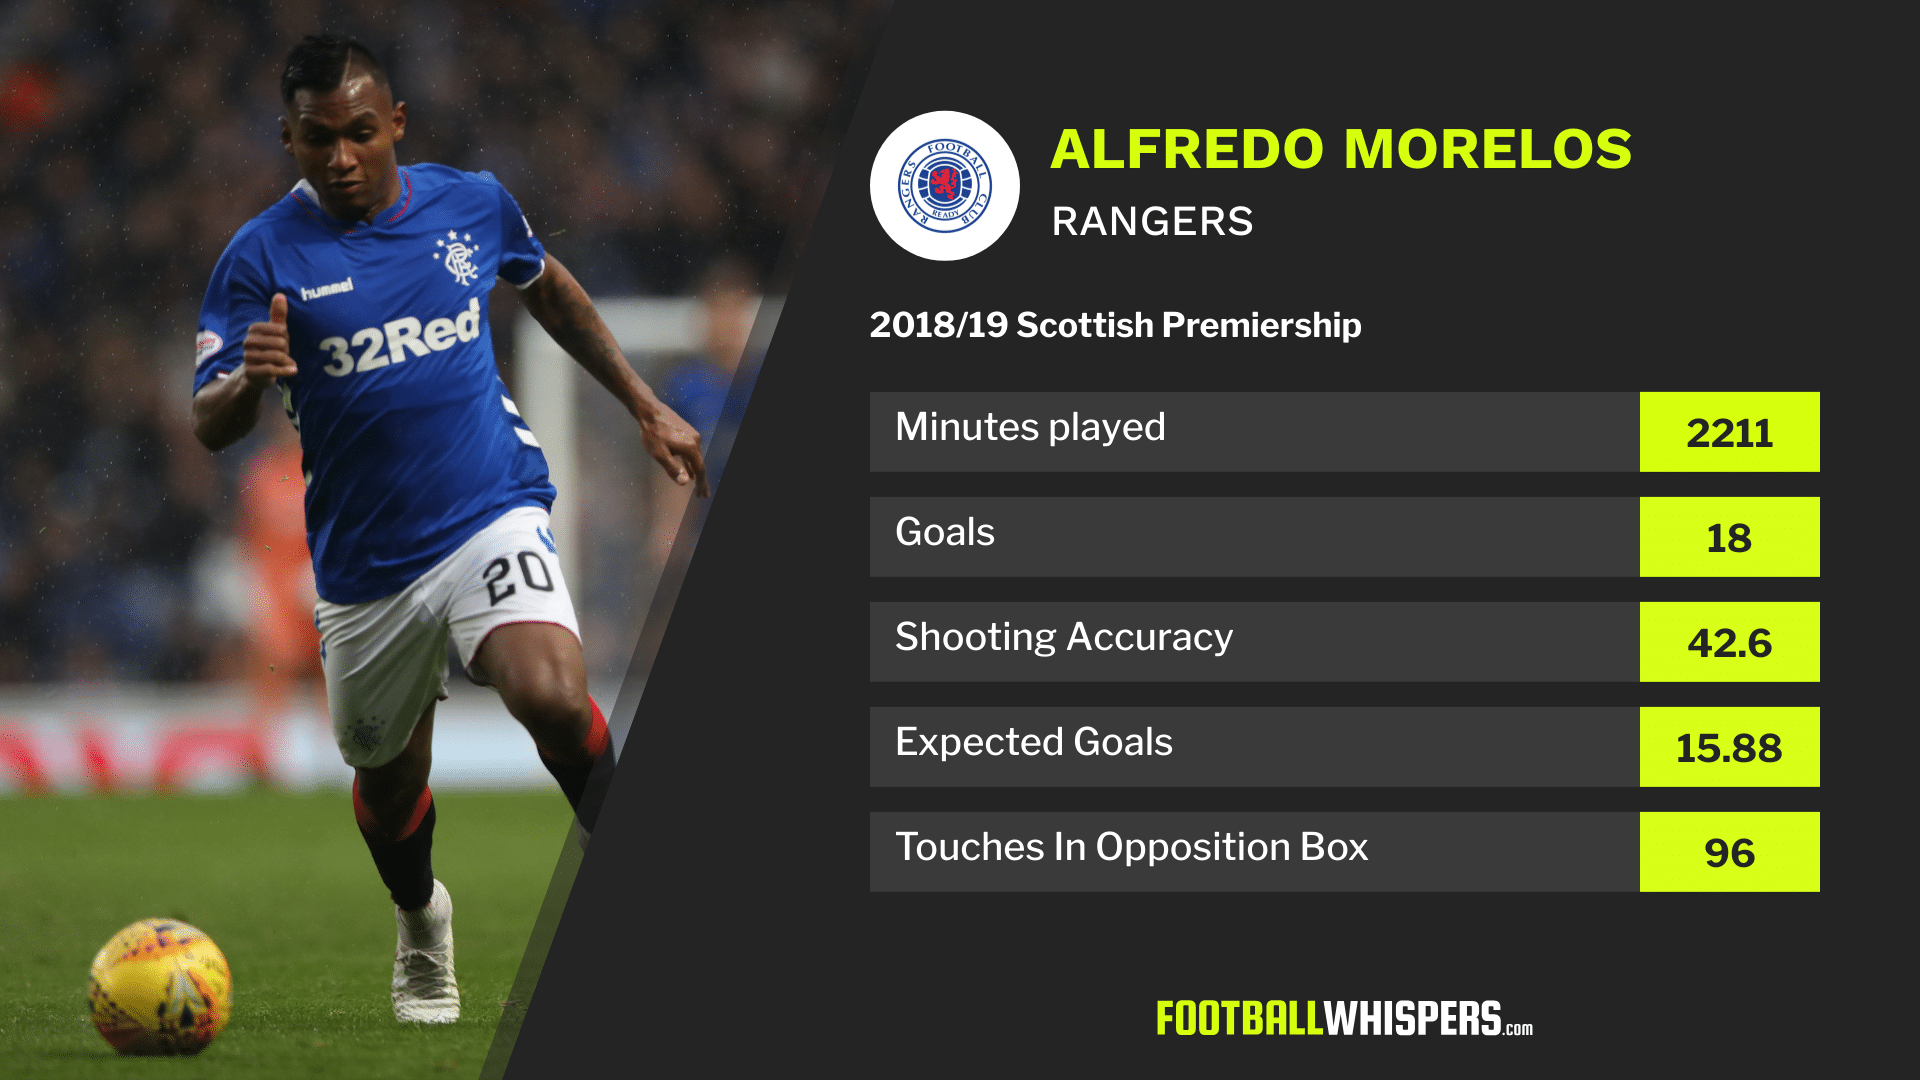 Scottish Premiership stats for Rangers striker Alfredo Morelos in 2018/19